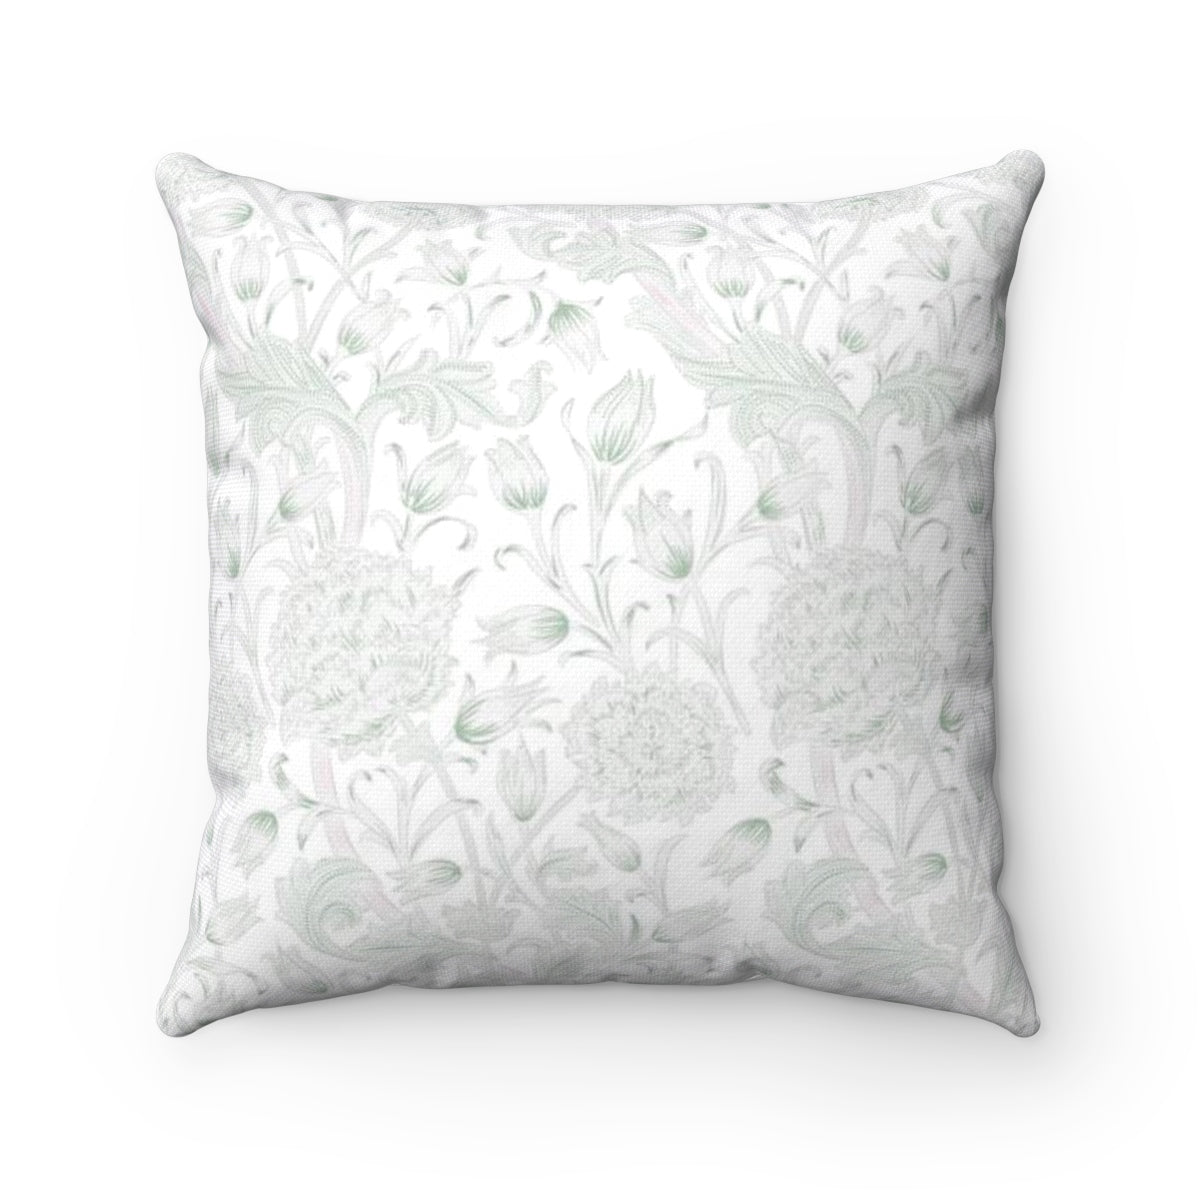 Green pattern decorative accent pillow - Liz Kapiloto Art & Design